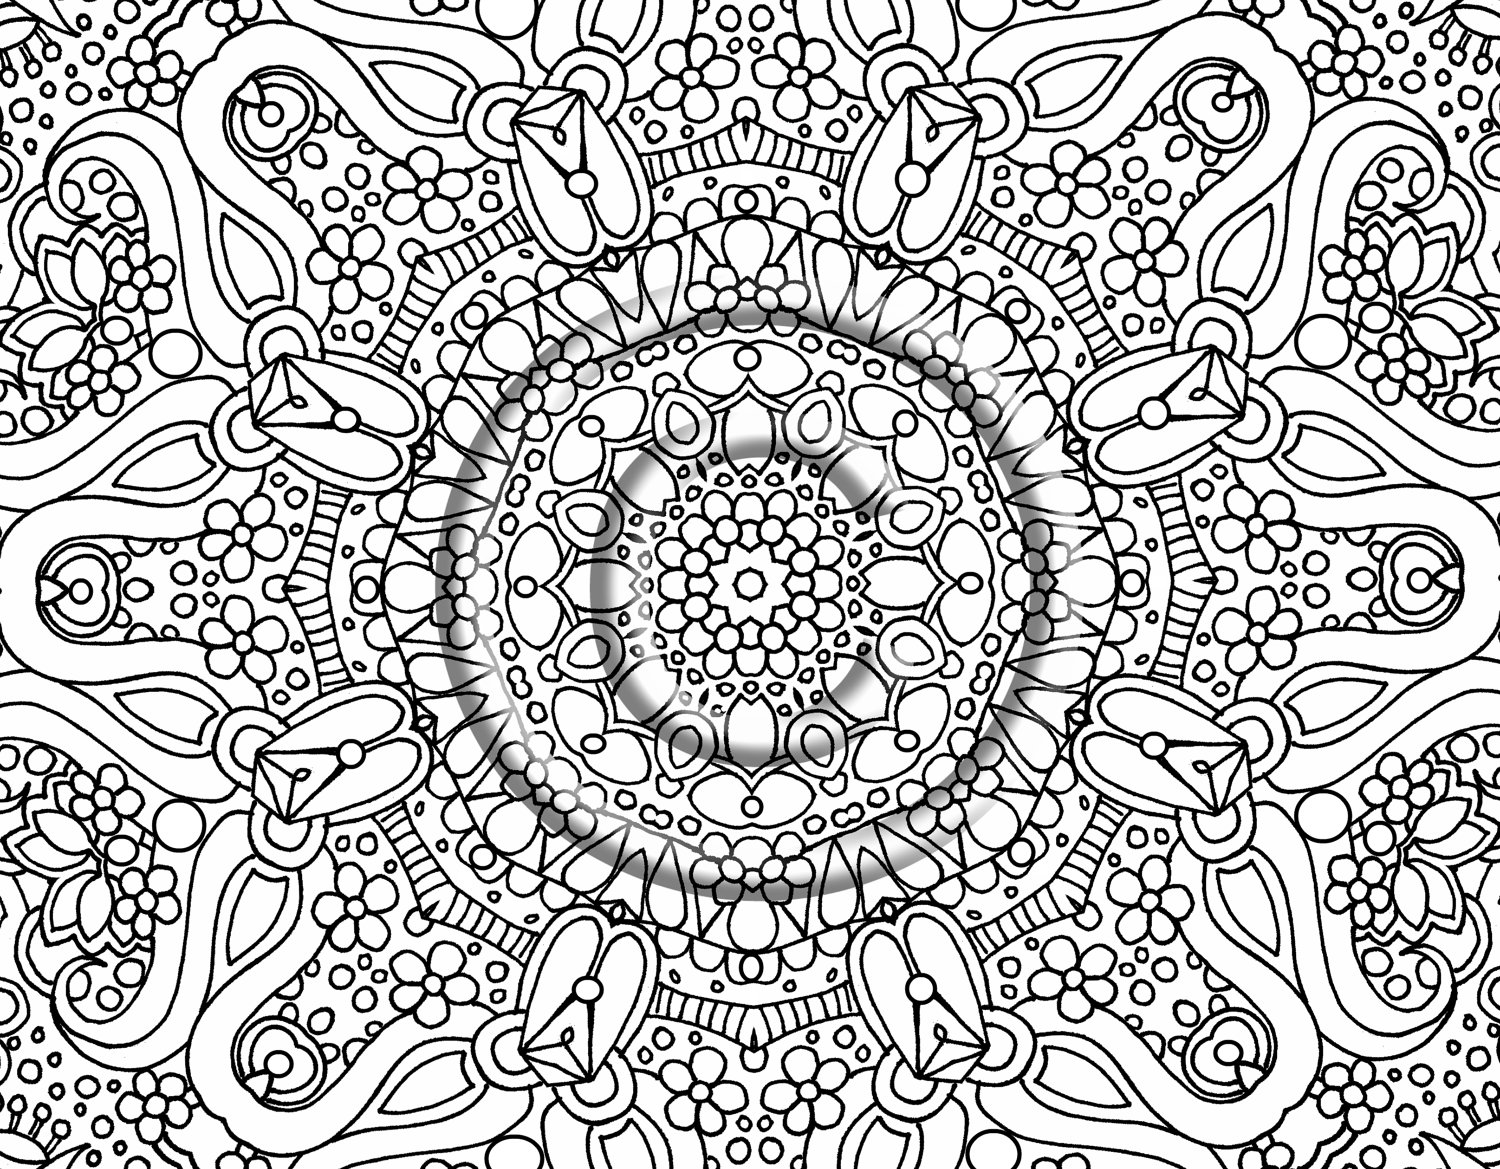 Free printable abstract coloring pages adults, hard coloring pages